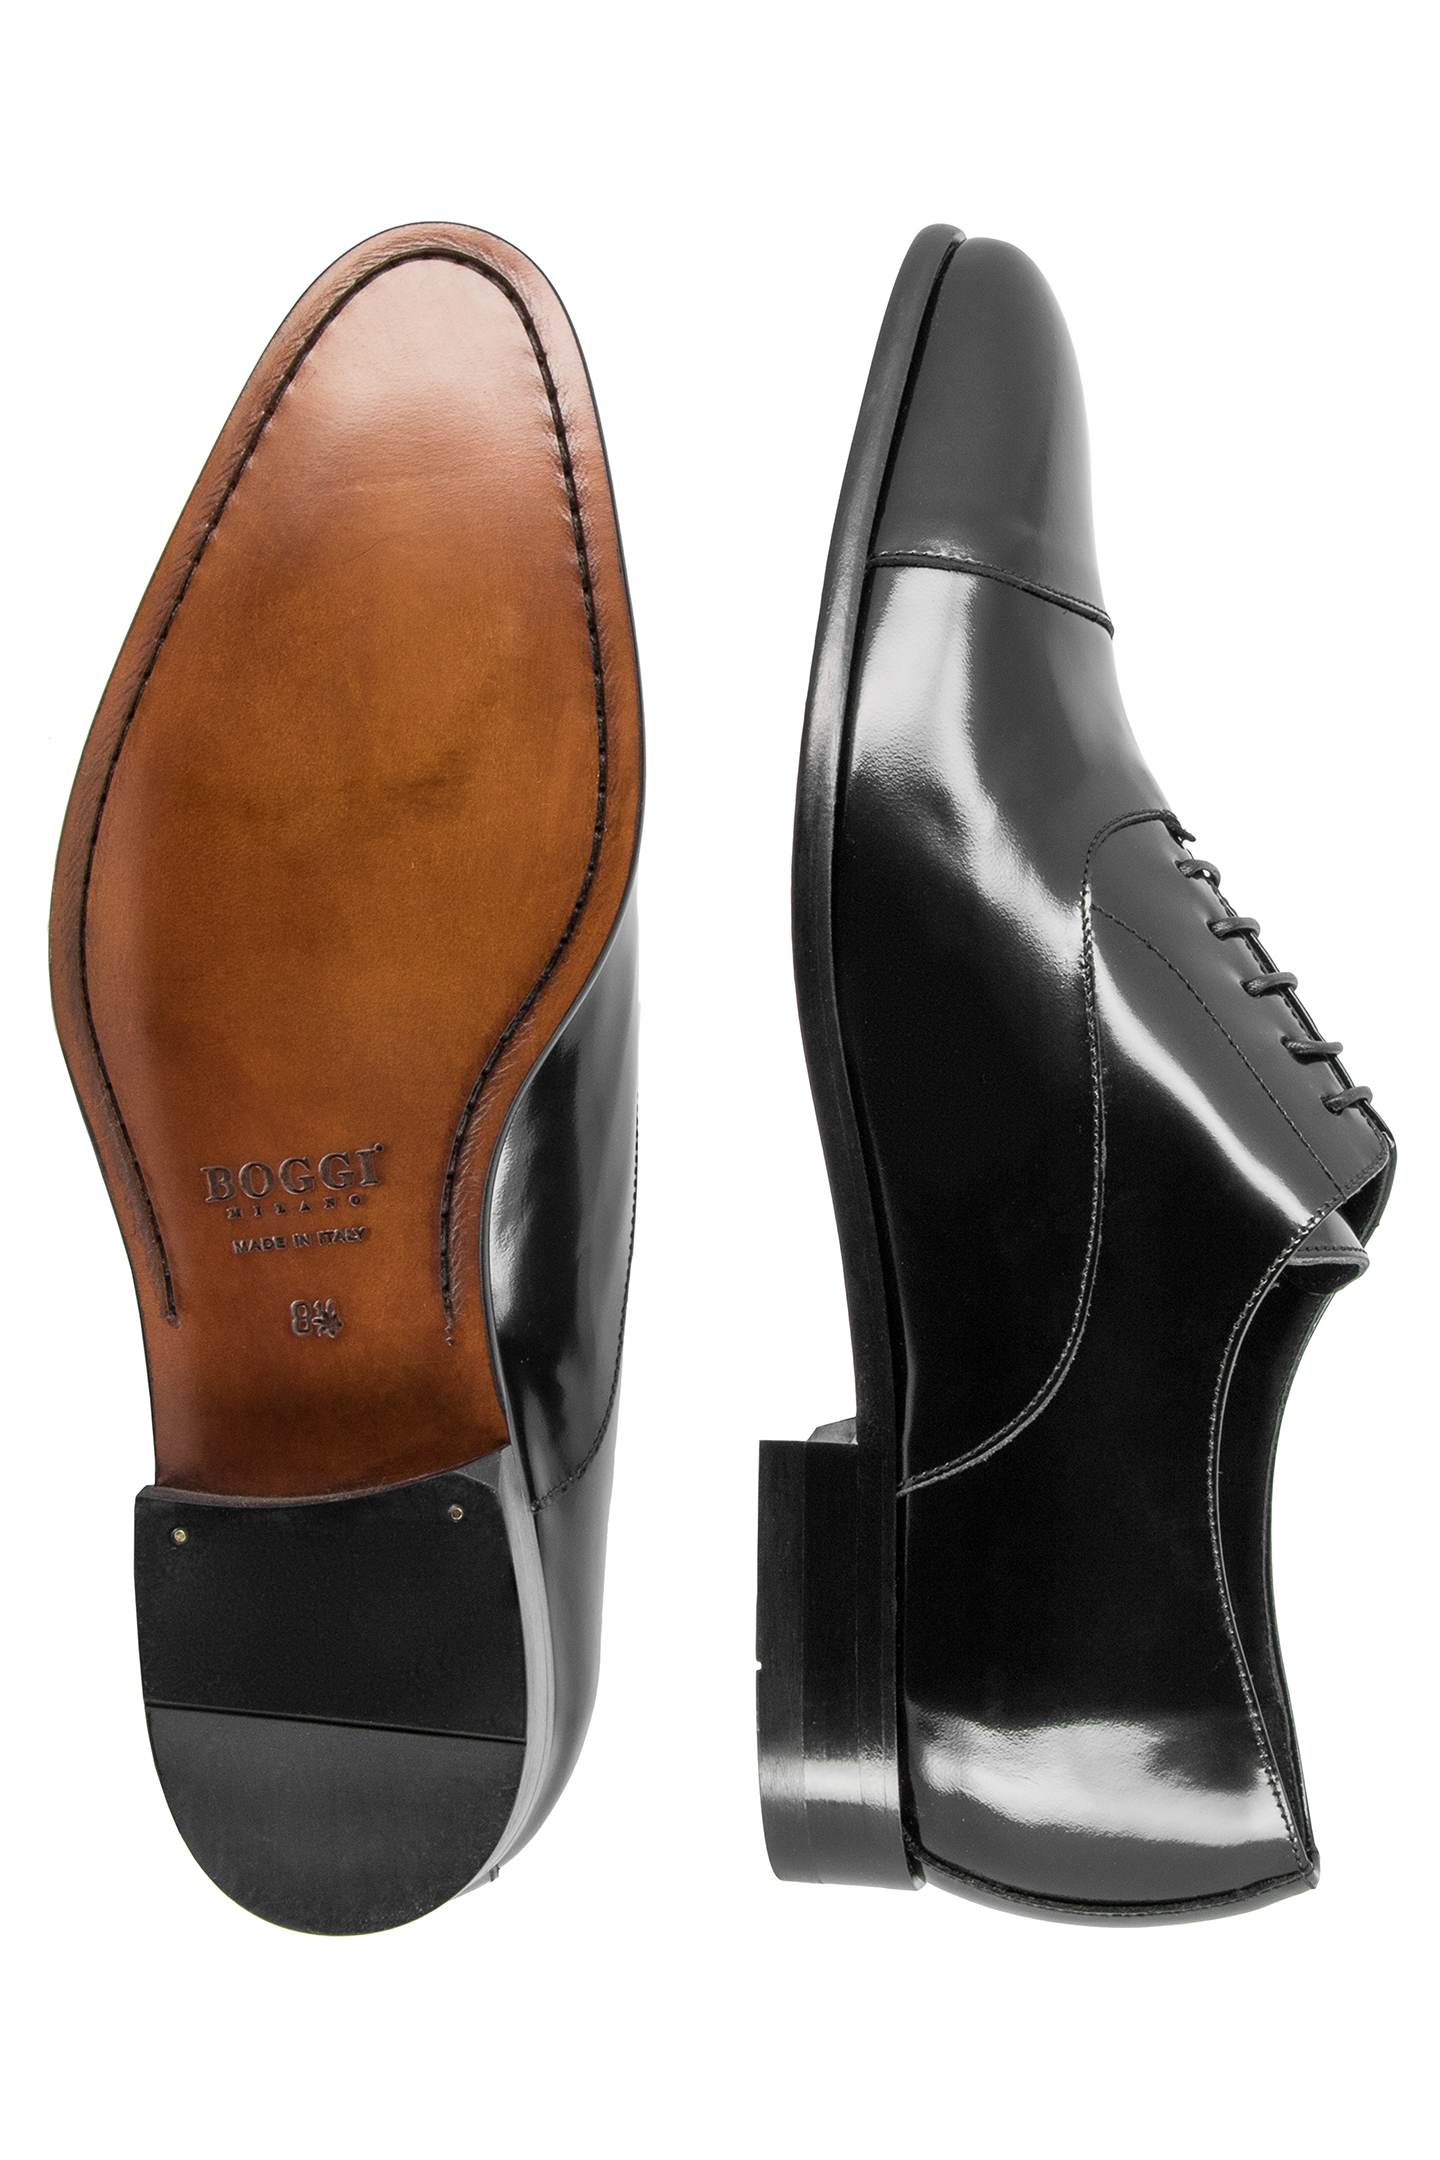 shiny leather oxford shoes made in italy black boggi